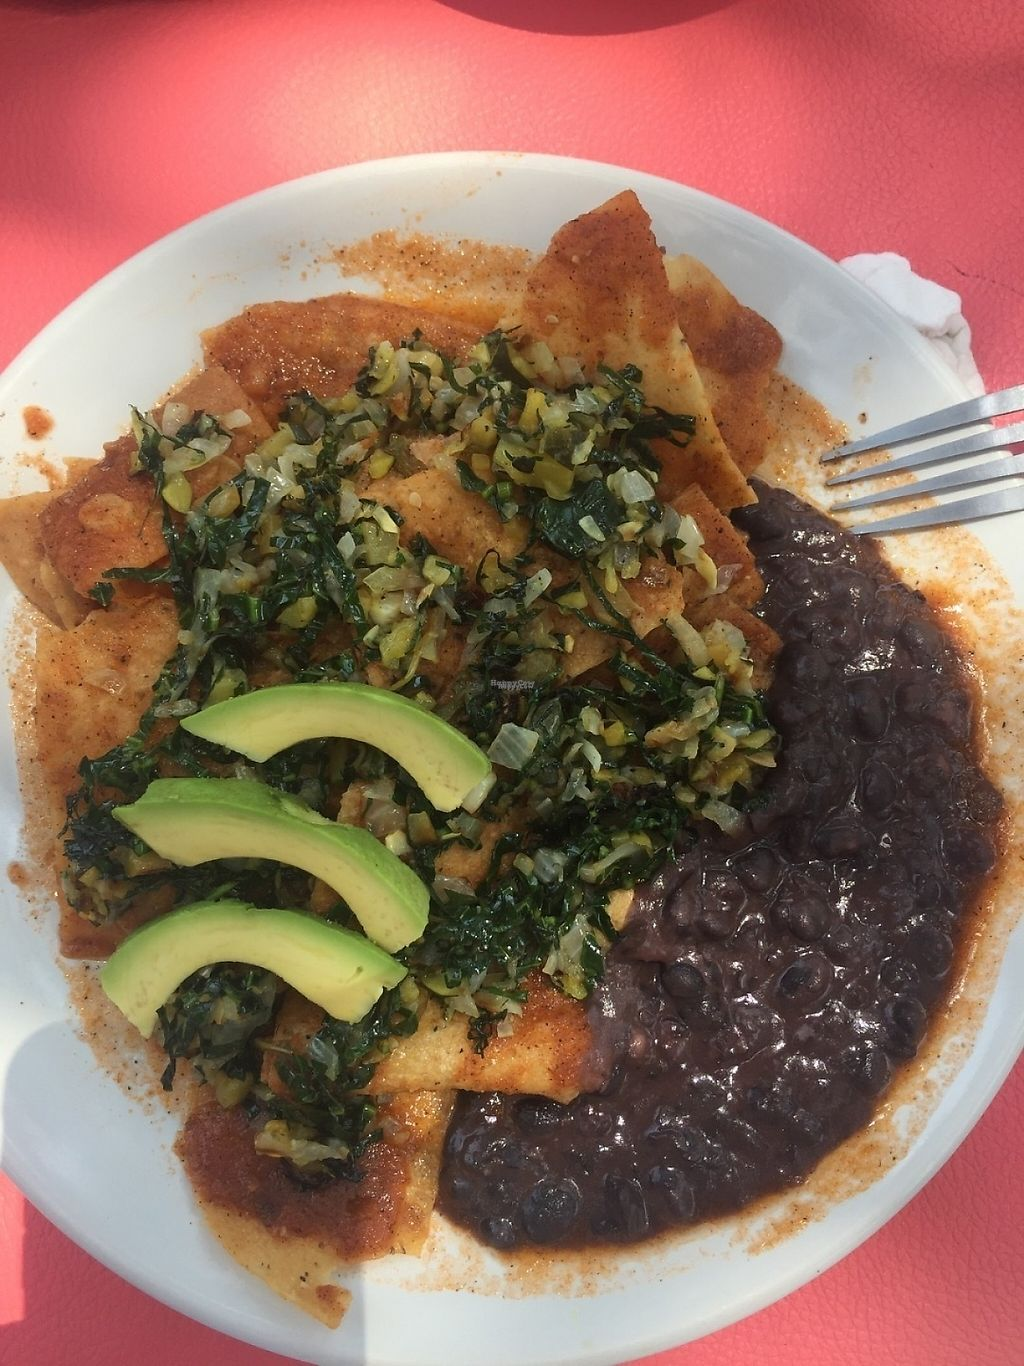 """Photo of El Manatí  by <a href=""""/members/profile/KarlaO"""">KarlaO</a> <br/>Vegan chilaquiles <br/> April 6, 2017  - <a href='/contact/abuse/image/89774/245231'>Report</a>"""